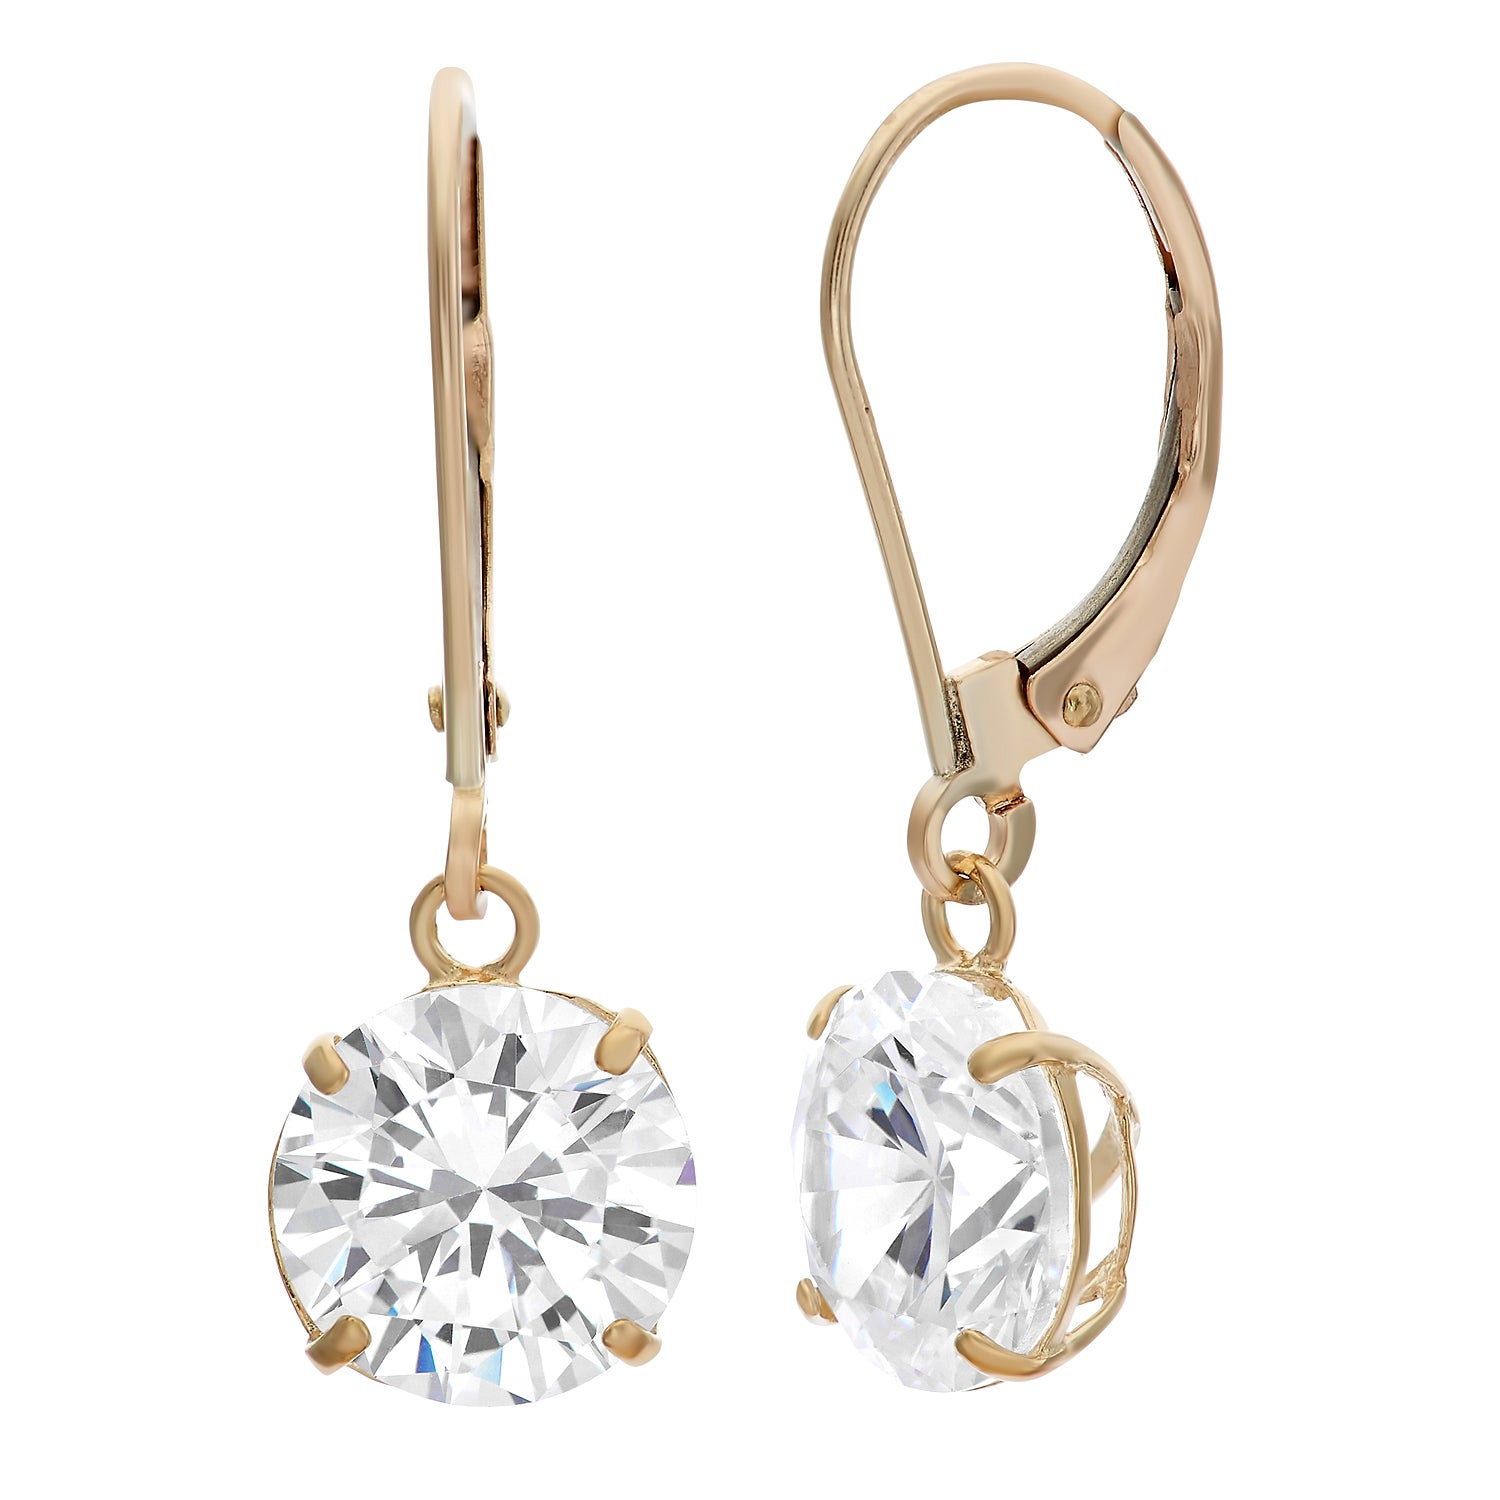 f2012b810 Details about Gioelli 10k Yellow Gold 8 mm Round Basket-set Cubic Zirconia  Leverback Earrings